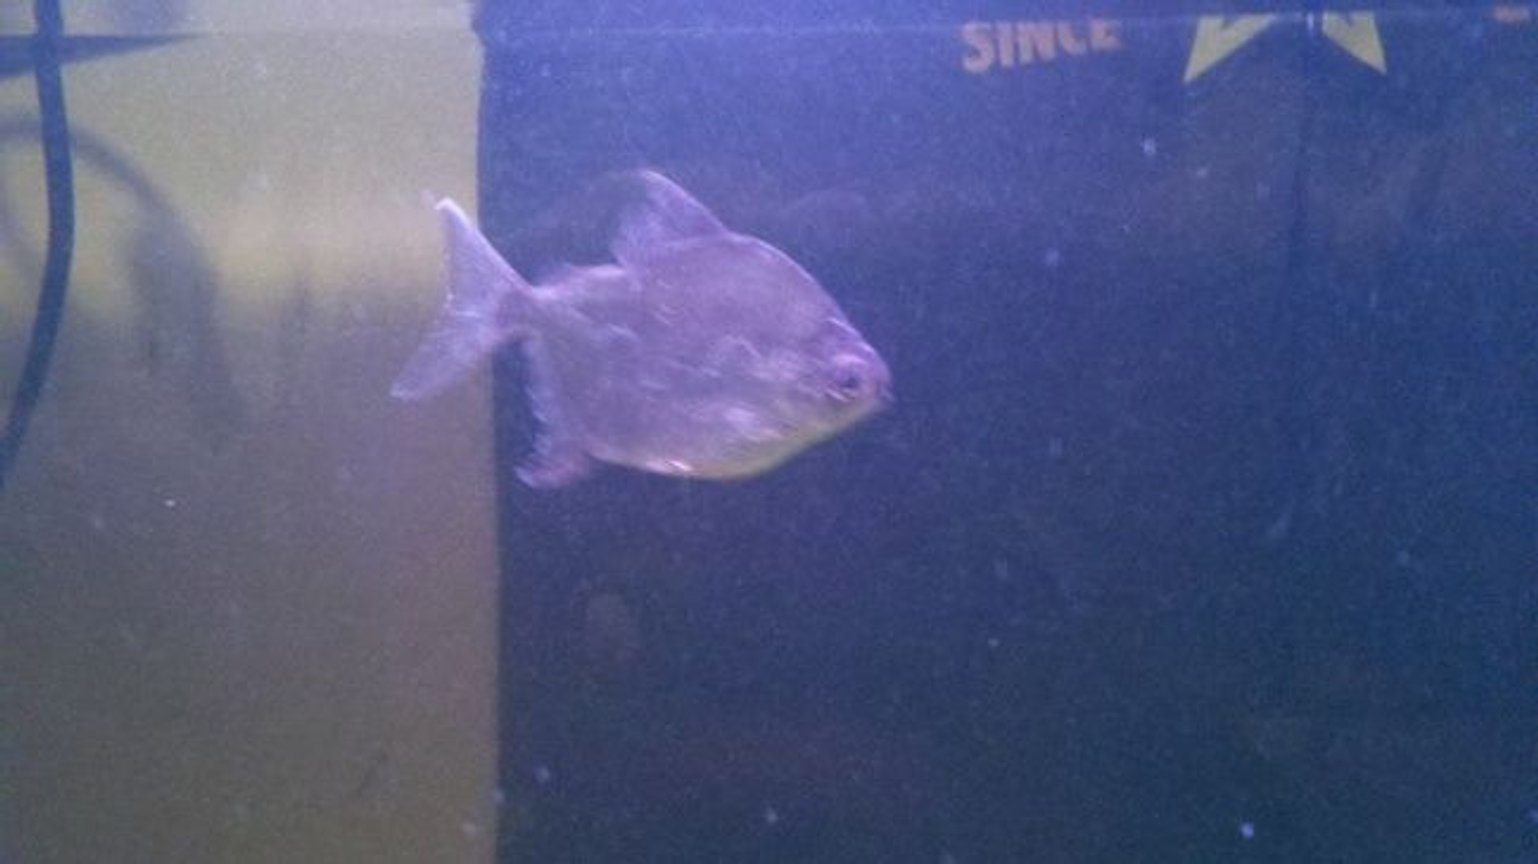 freshwater fish - metynnis argenteus - silver dollar stocking in 39 gallons tank - Red Hook I